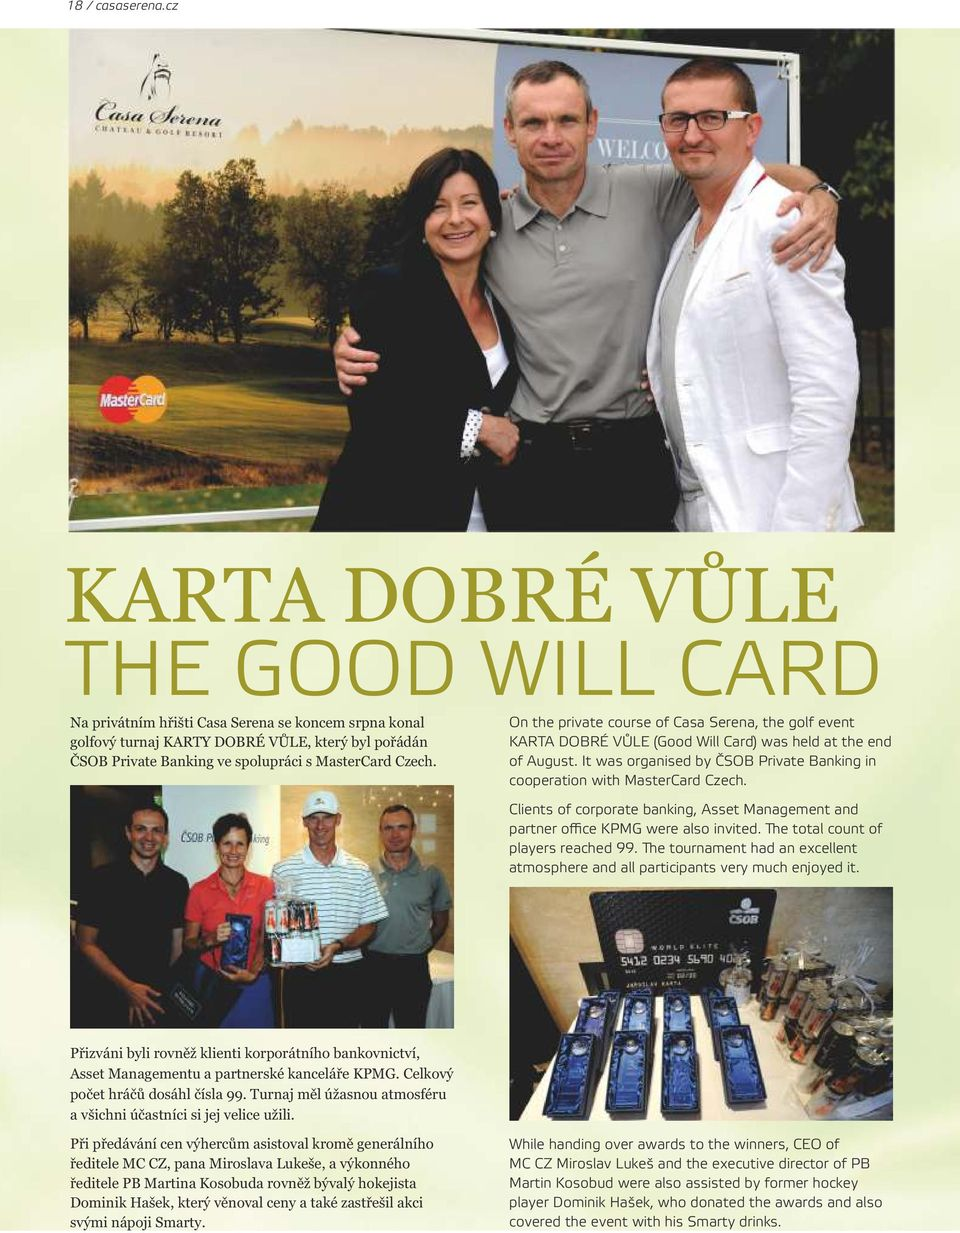 On the private course of Casa Serena, the golf event KARTA DOBRÉ VŮLE (Good Will Card) was held at the end of August. It was organised by ČSOB Private Banking in cooperation with MasterCard Czech.